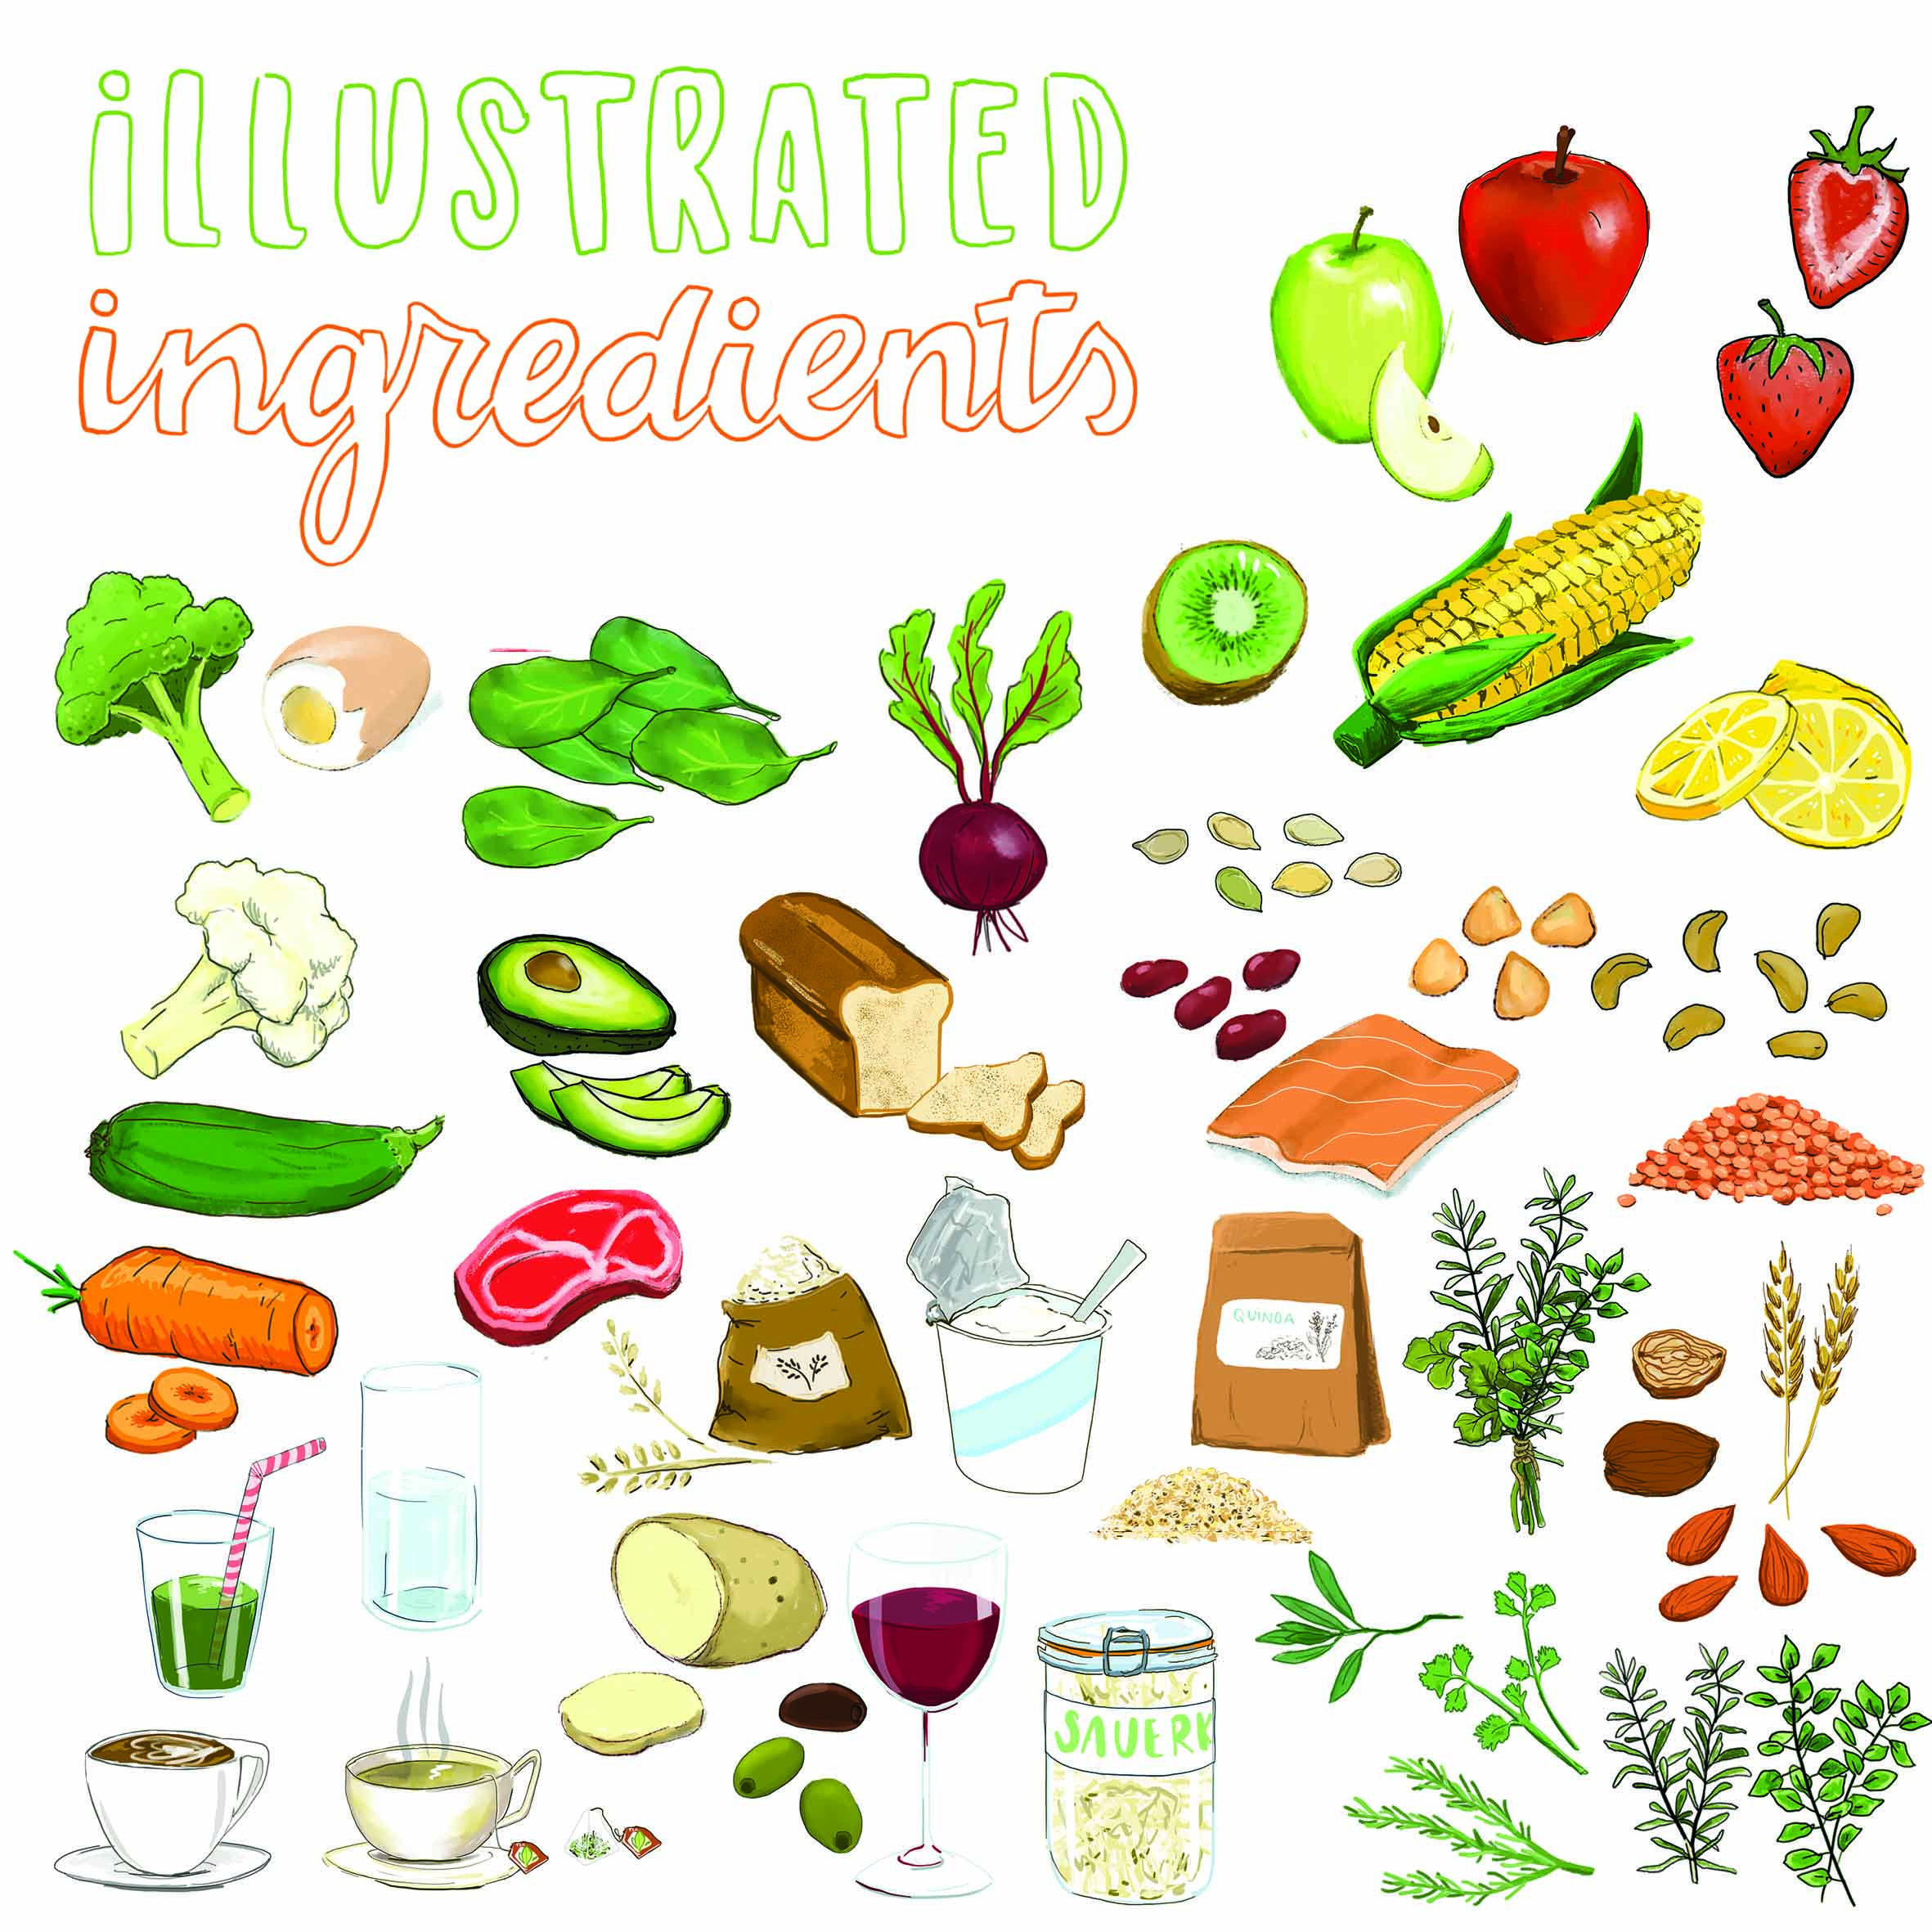 Ingredient illustrations - ALl